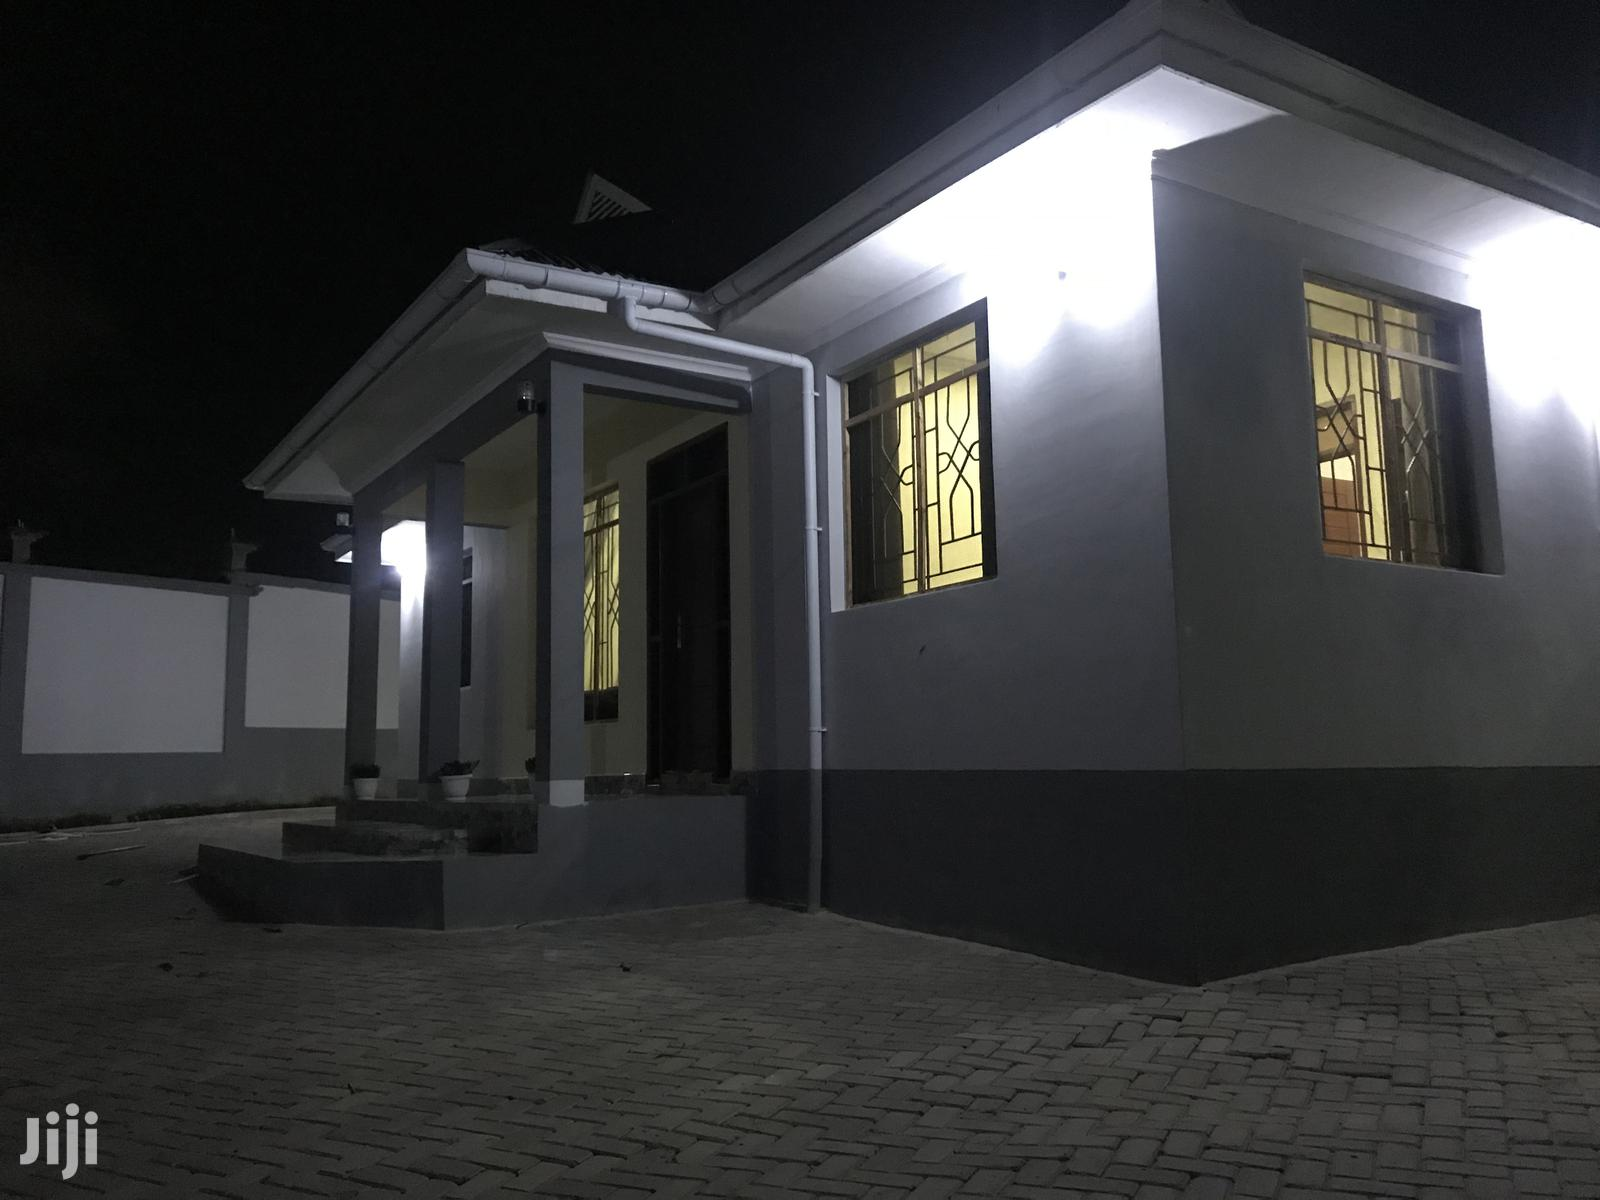 House in a Good Condition | Houses & Apartments For Sale for sale in Kinondoni, Dar es Salaam, Tanzania